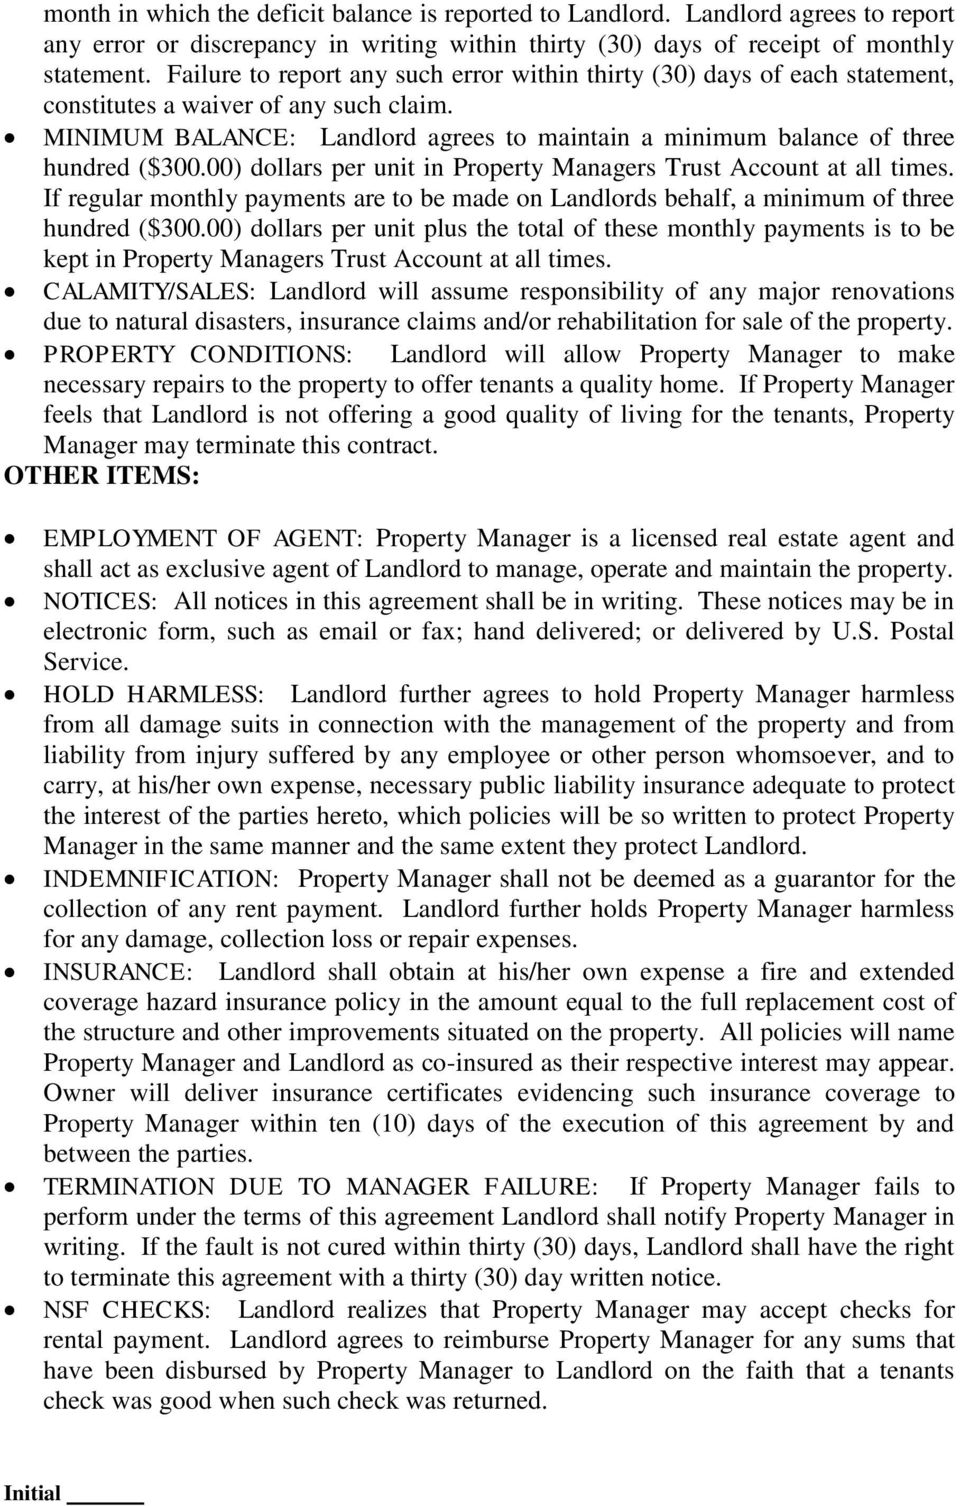 MINIMUM BALANCE: Landlord agrees to maintain a minimum balance of three hundred ($300.00) dollars per unit in Property Managers Trust Account at all times.